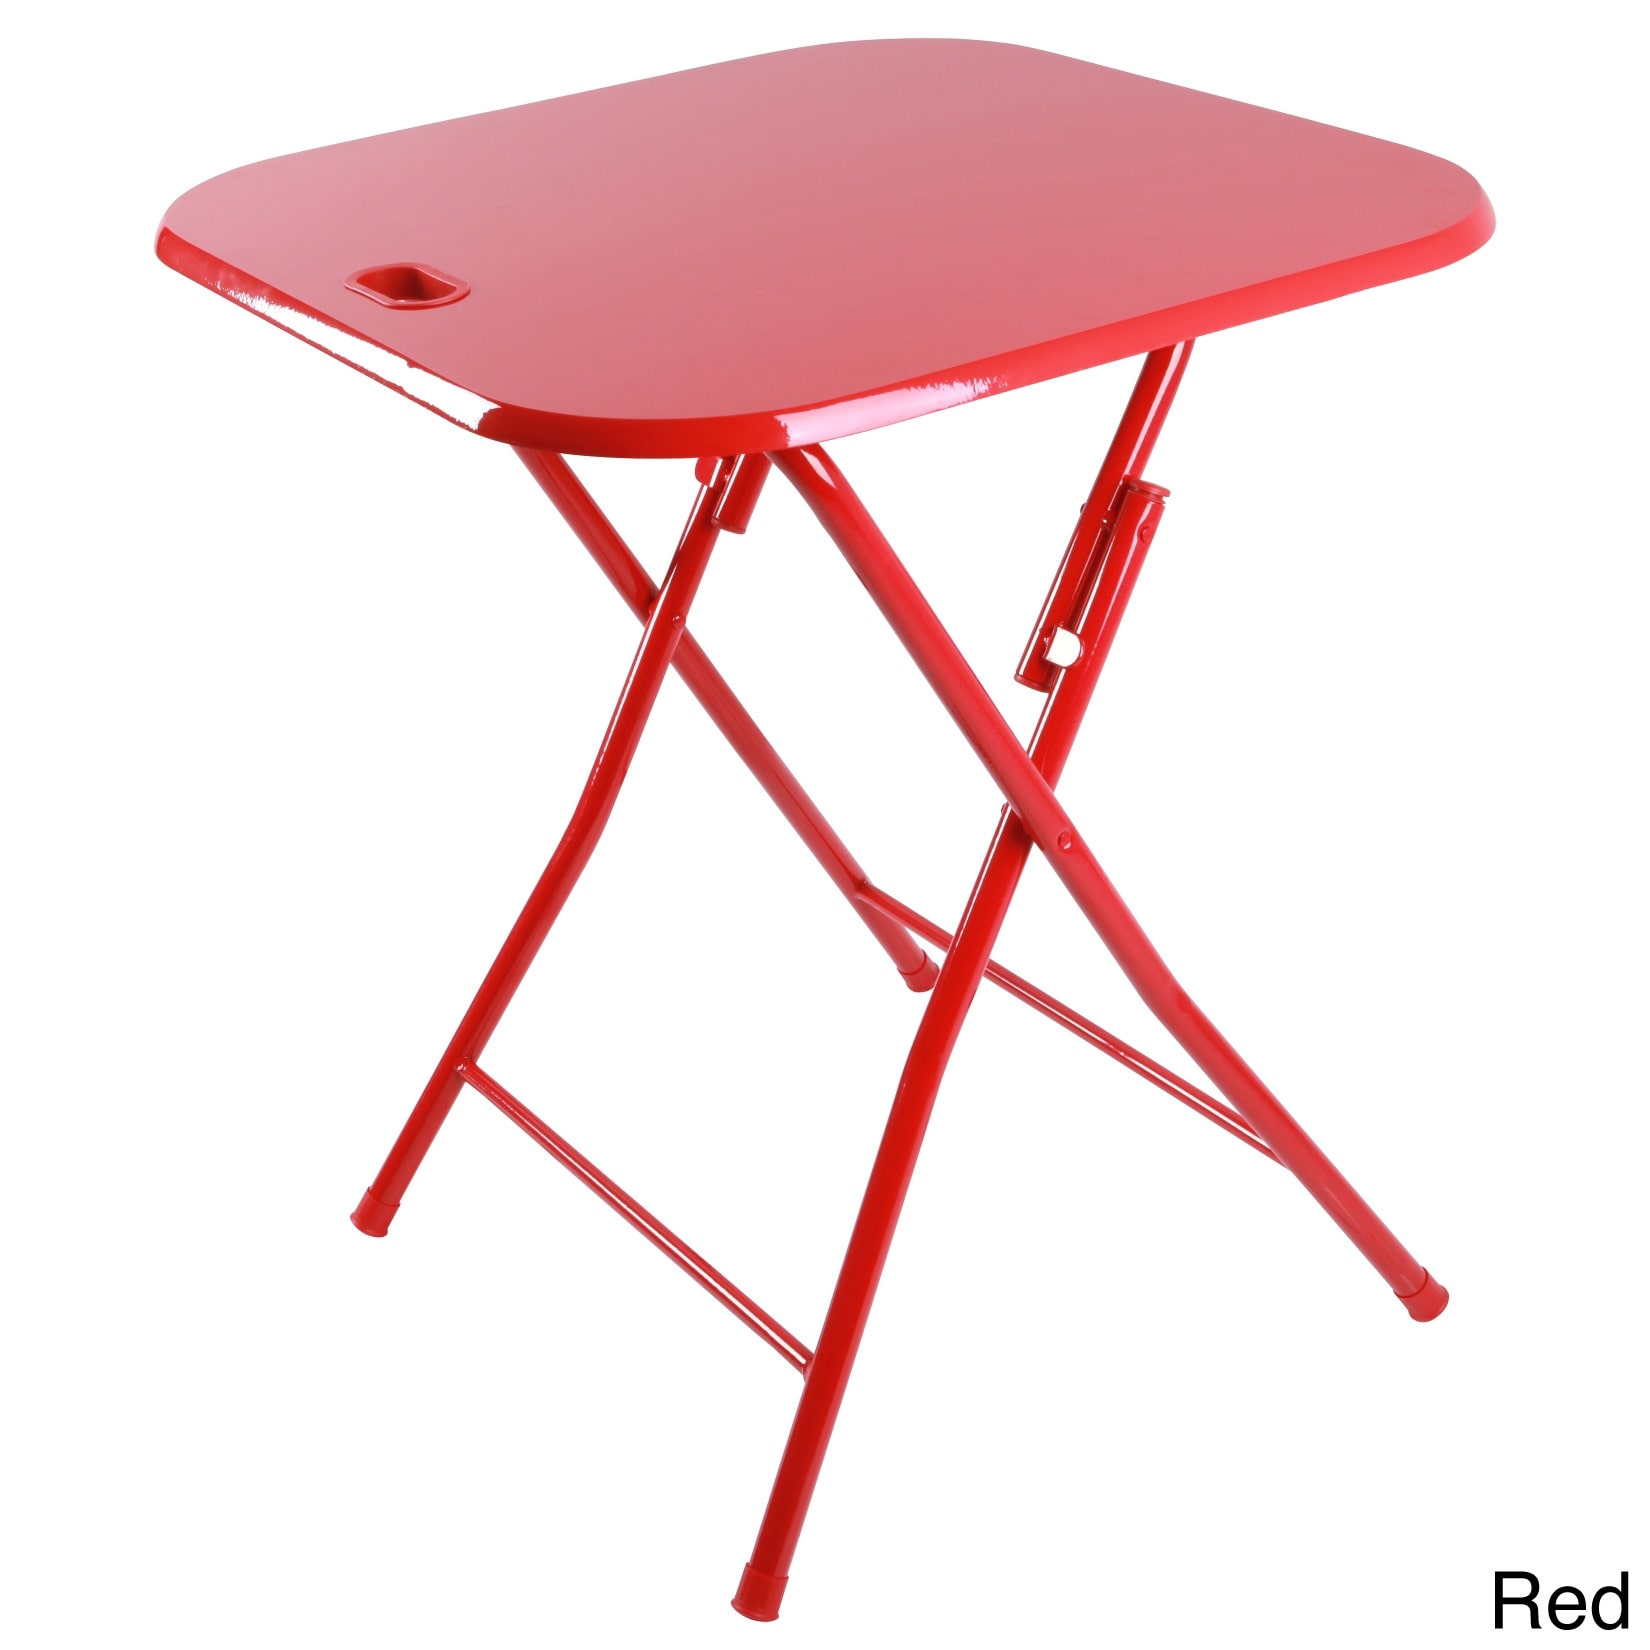 DarLiving urb SPACE Metal Folding Table with Handle